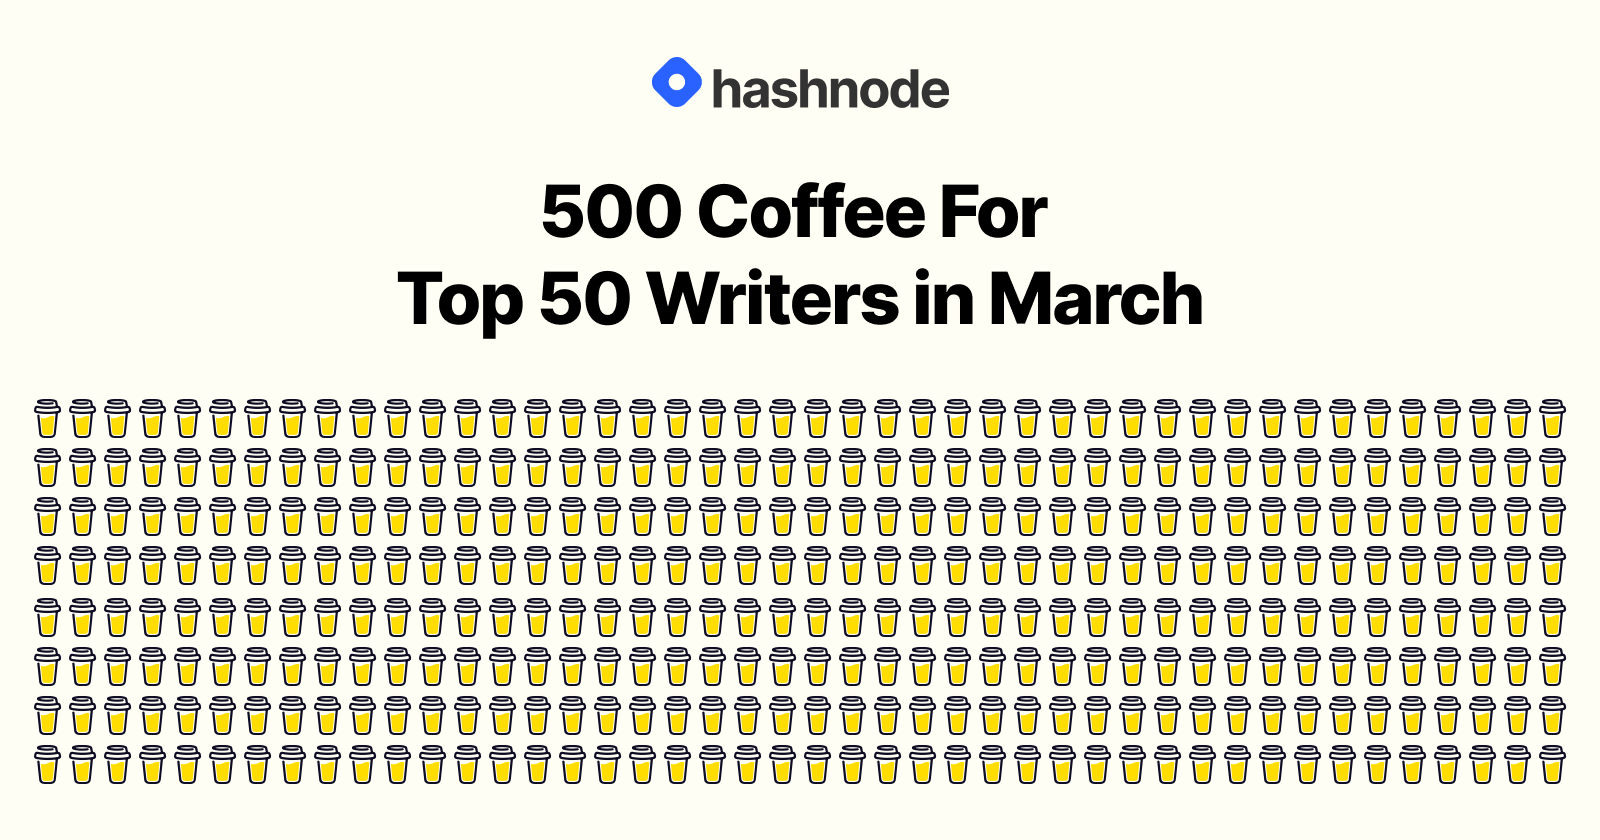 Buying top 50 Hashnode writers coffee in March!